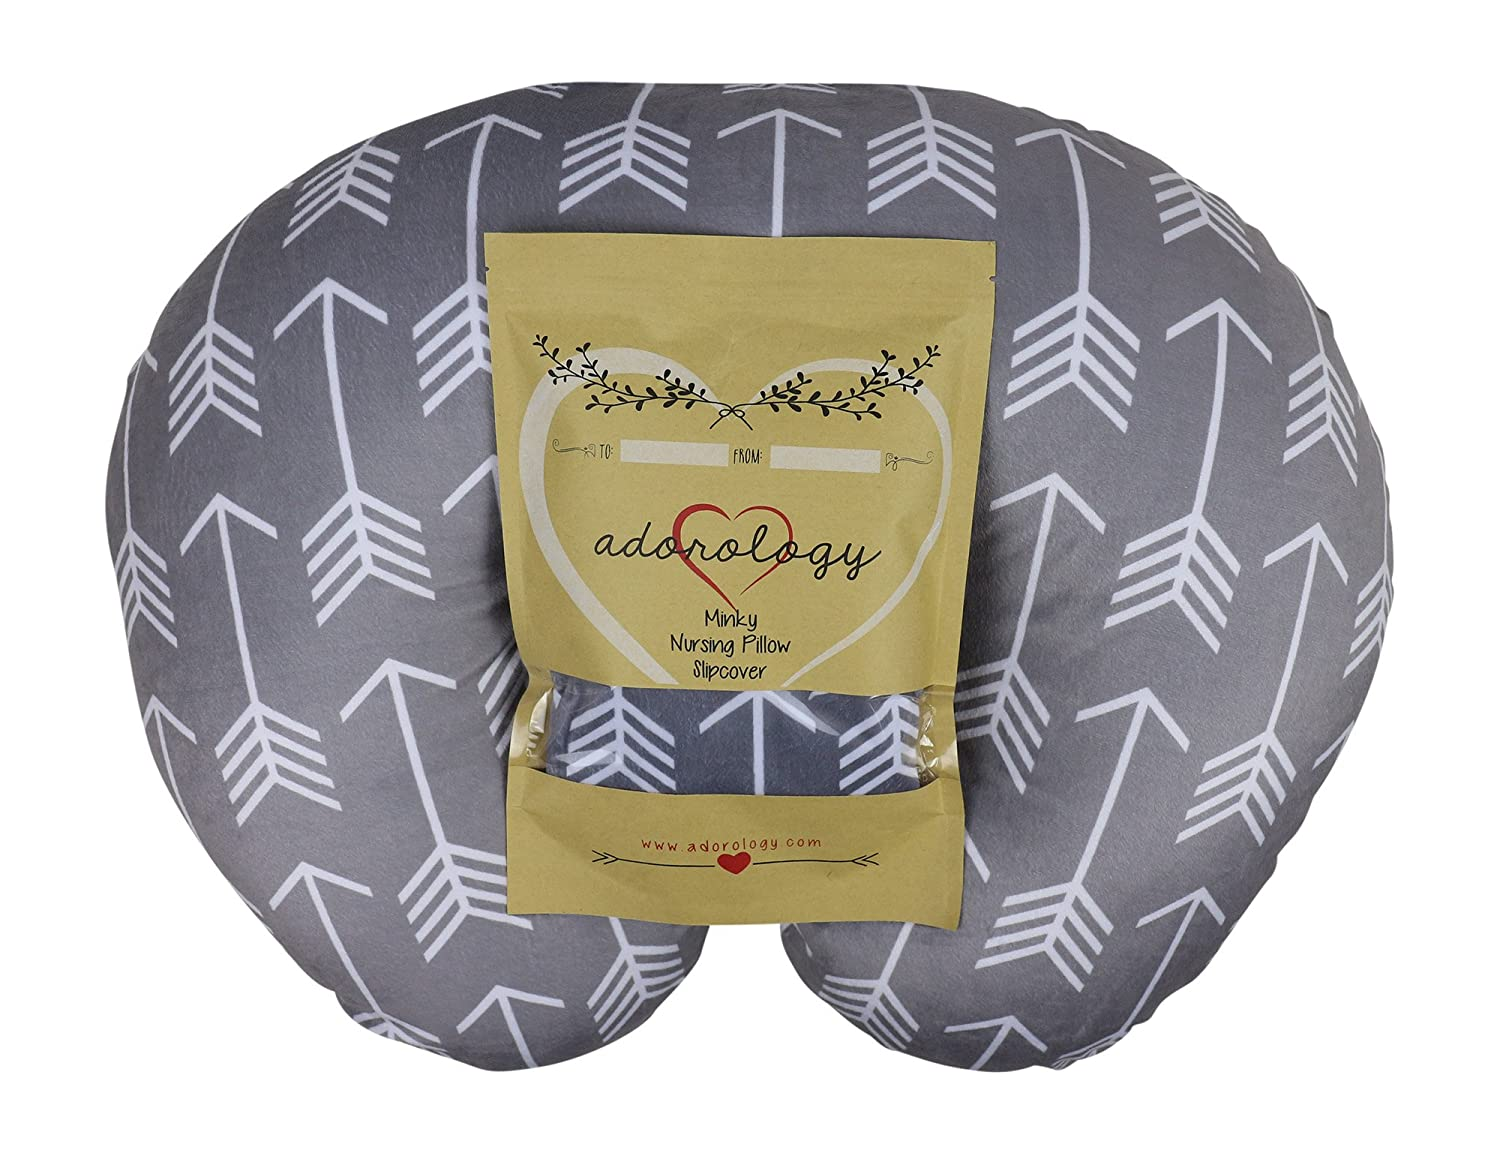 Minky Nursing Pillow Slipcover | Gray Arrow Design | Infant Breastfeeding Soft Pillow Cover | Great Baby Shower Gift for Any Mom to Be by Adorology